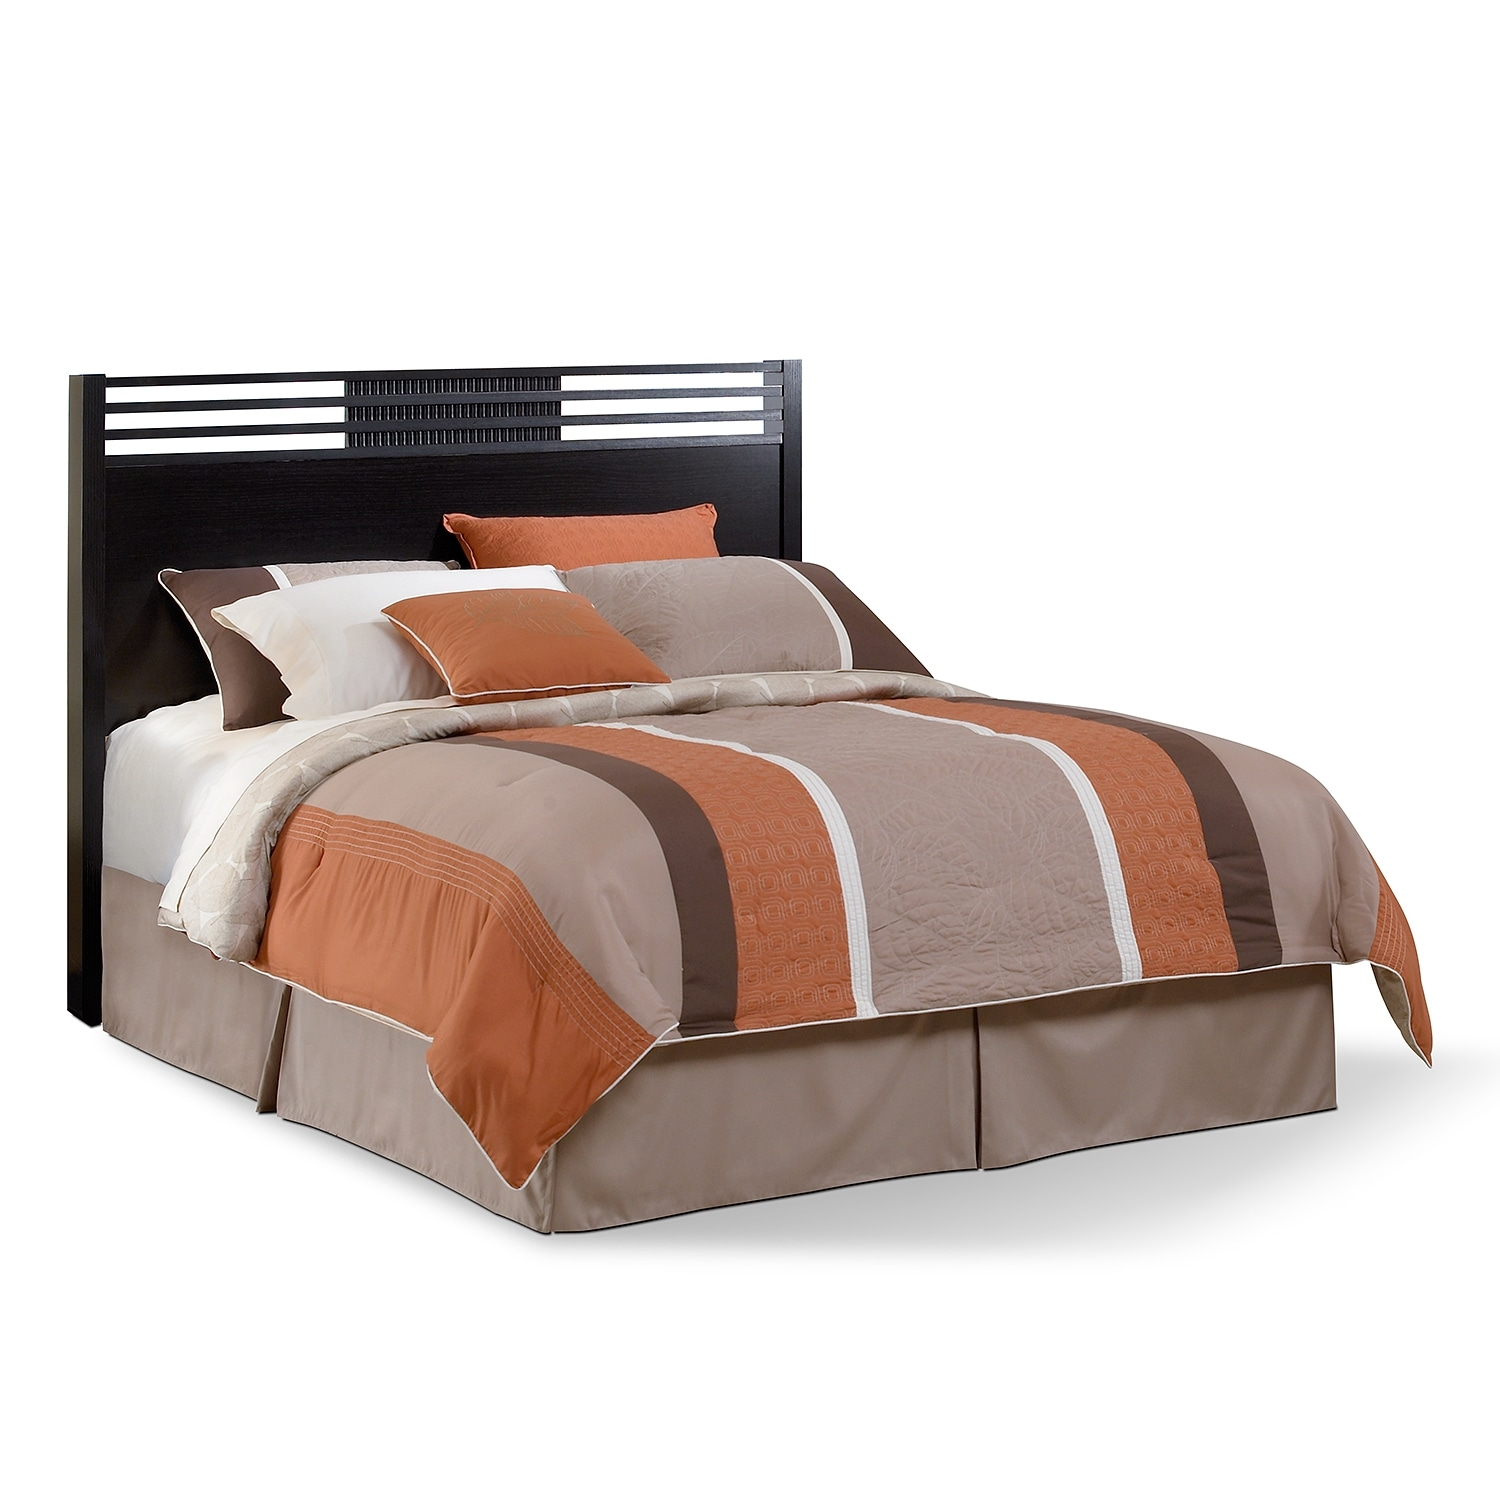 Bedroom Furniture - Kendall Espresso Queen Headboard